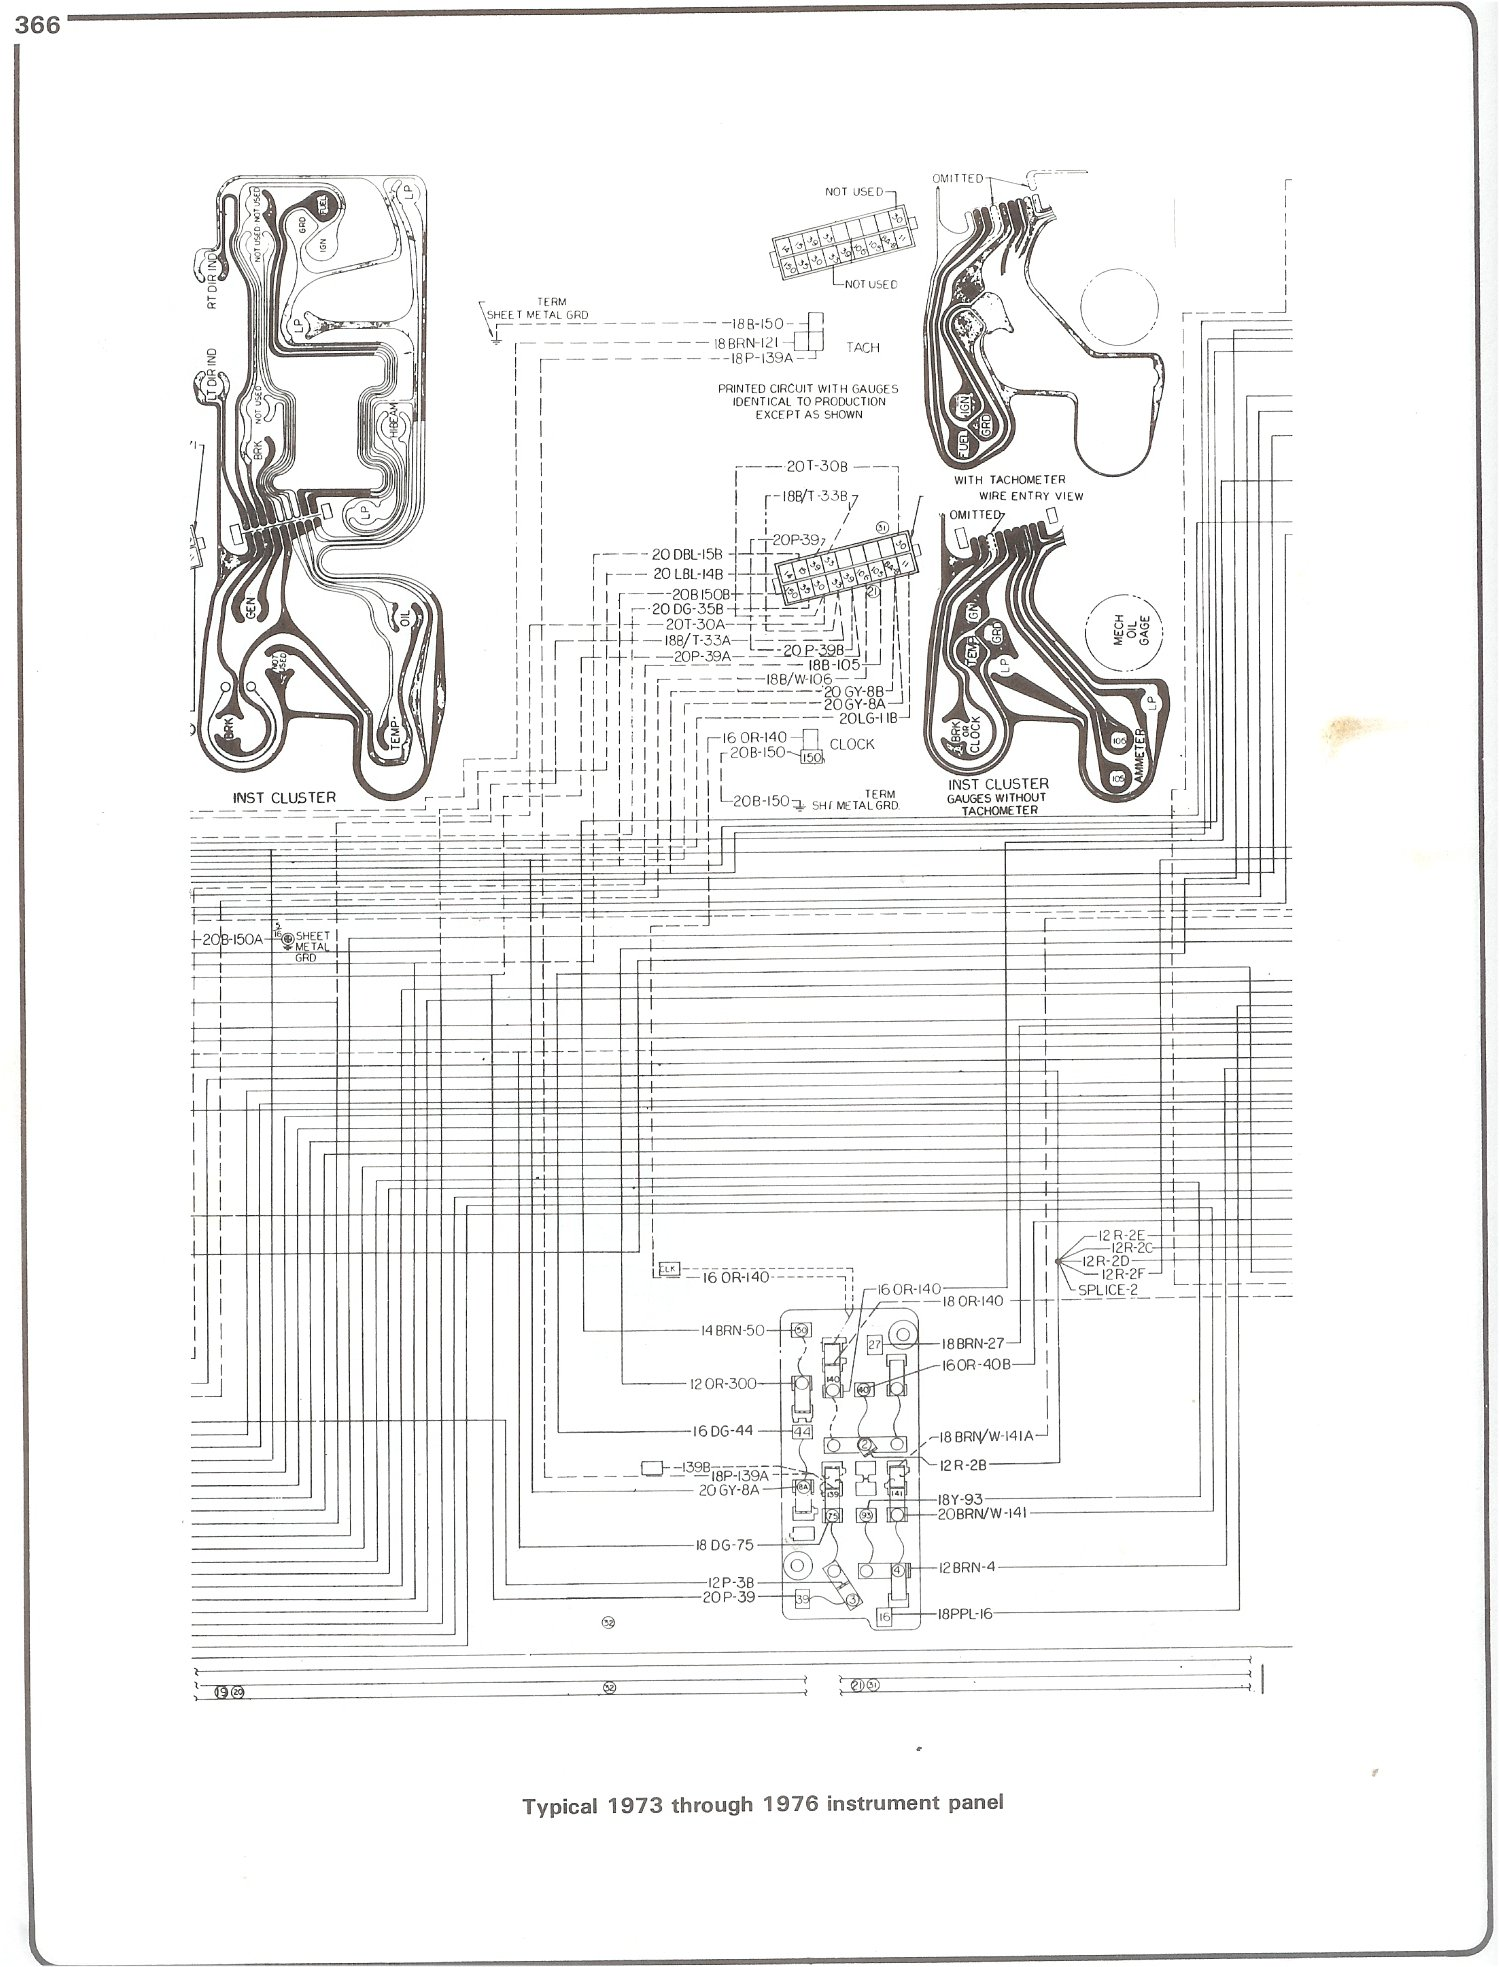 73 76_instrument complete 73 87 wiring diagrams GM Factory Wiring Diagram at soozxer.org